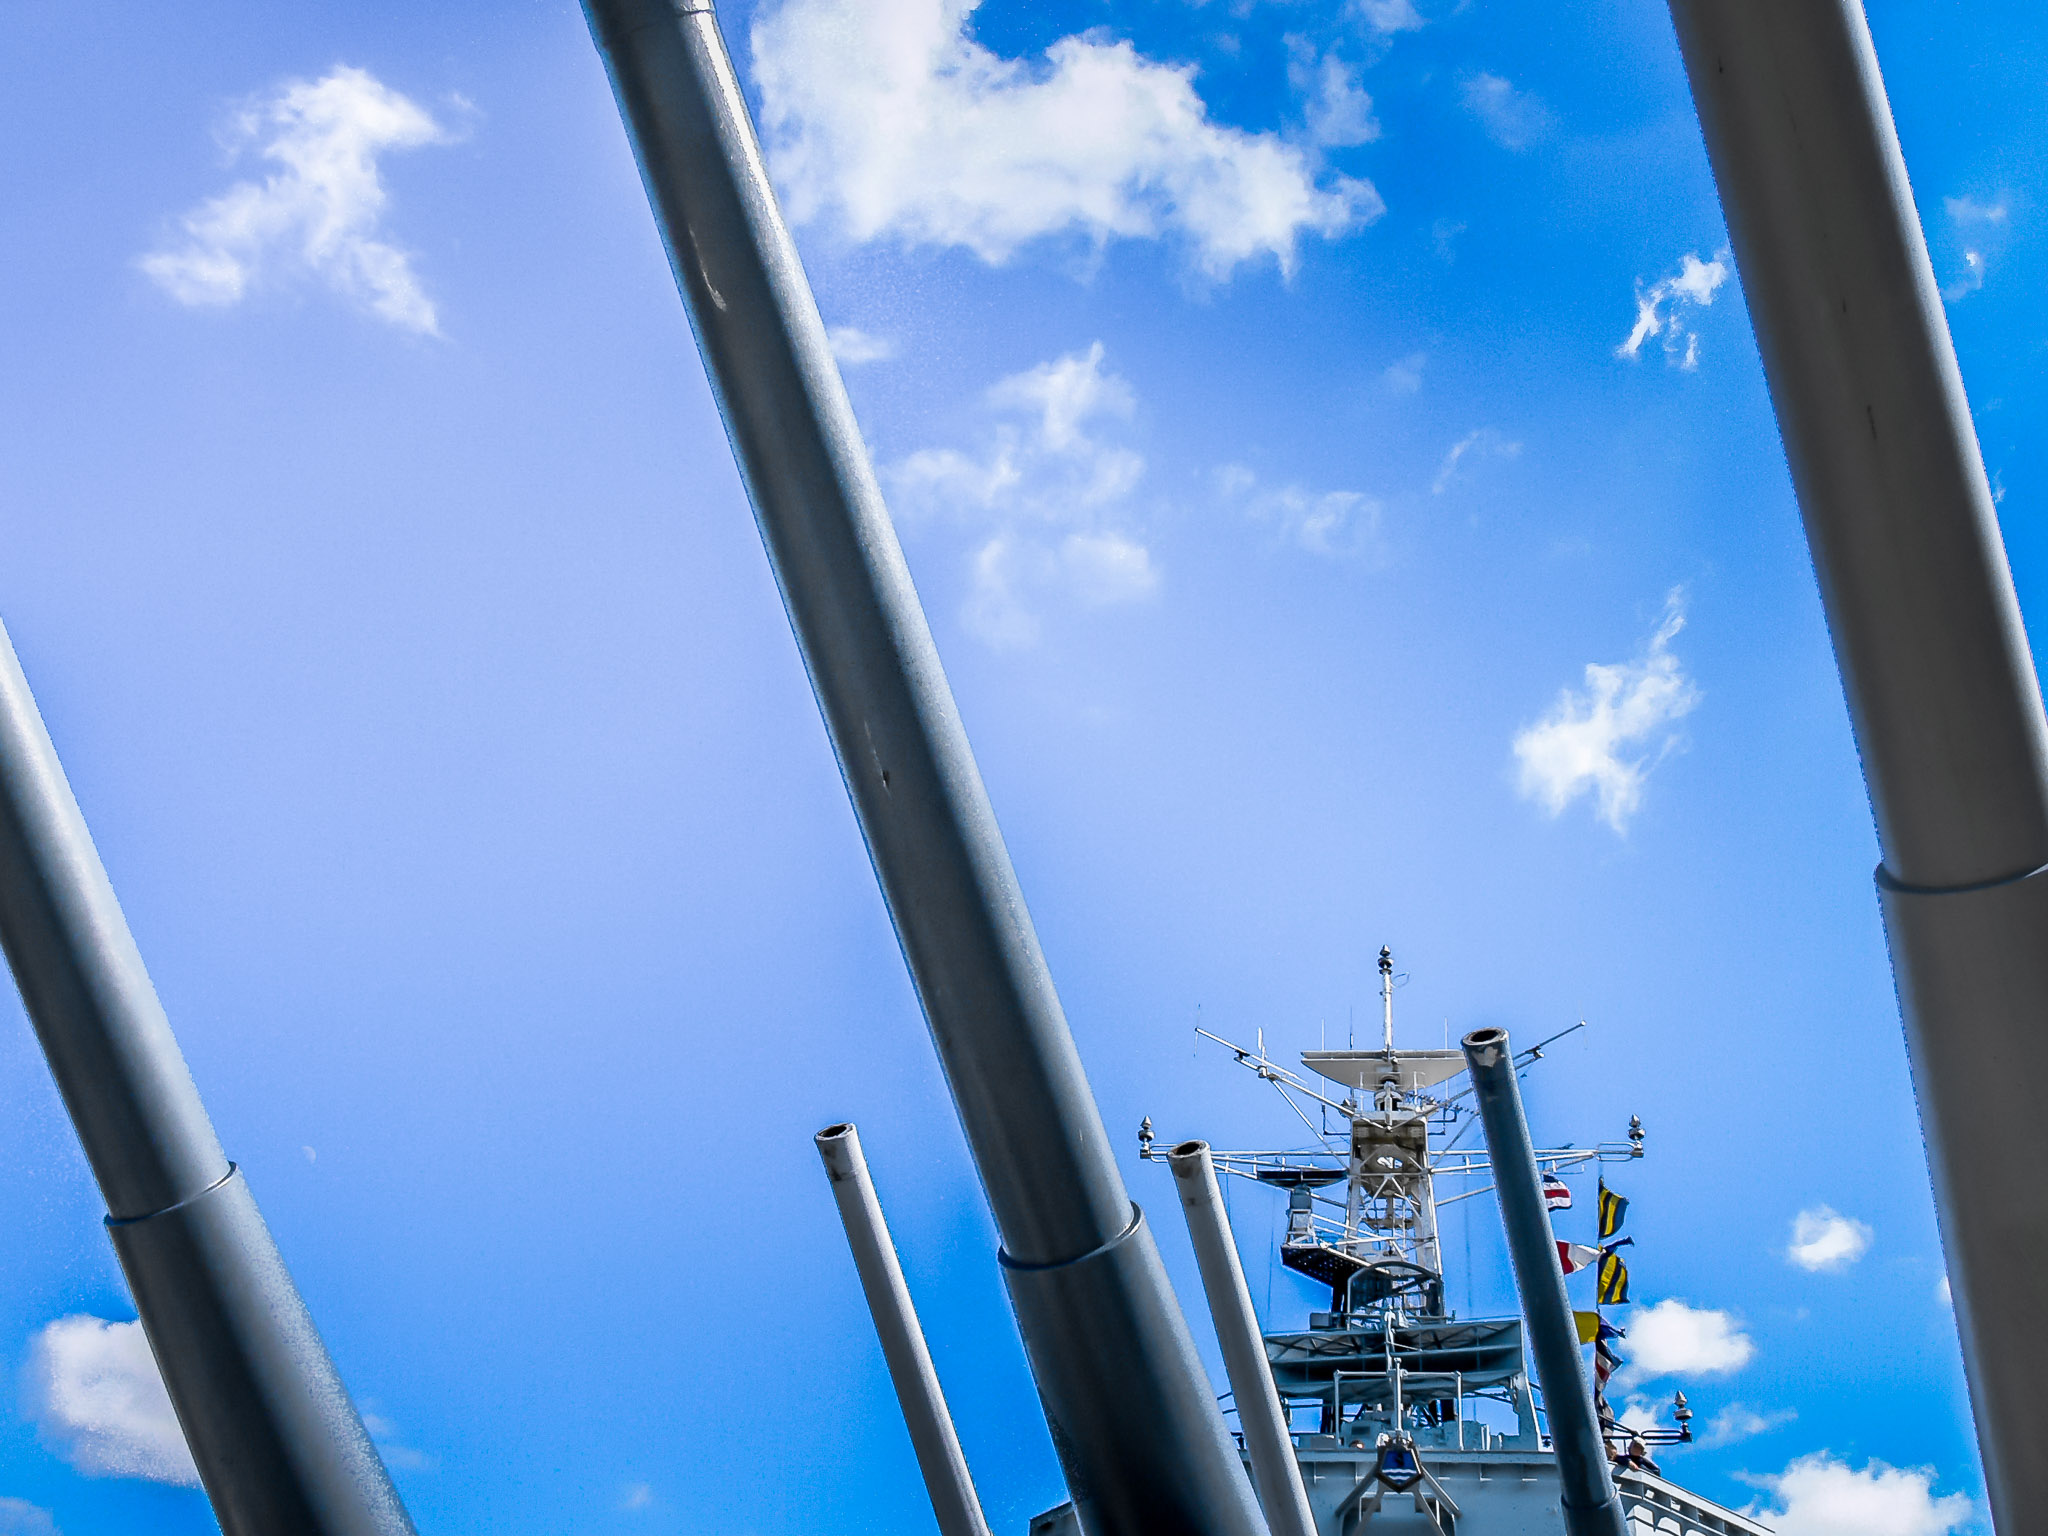 Photo: Belfast Guns HMS Belfast, that is.  On a warm, clear day in May 2004 we visited the permanently docked HMS Belfast in London. I've always liked this view.  Processed using only #Lightroom5  and exported directly as a JPEG.   #Travel   #London   #HMSBelfast